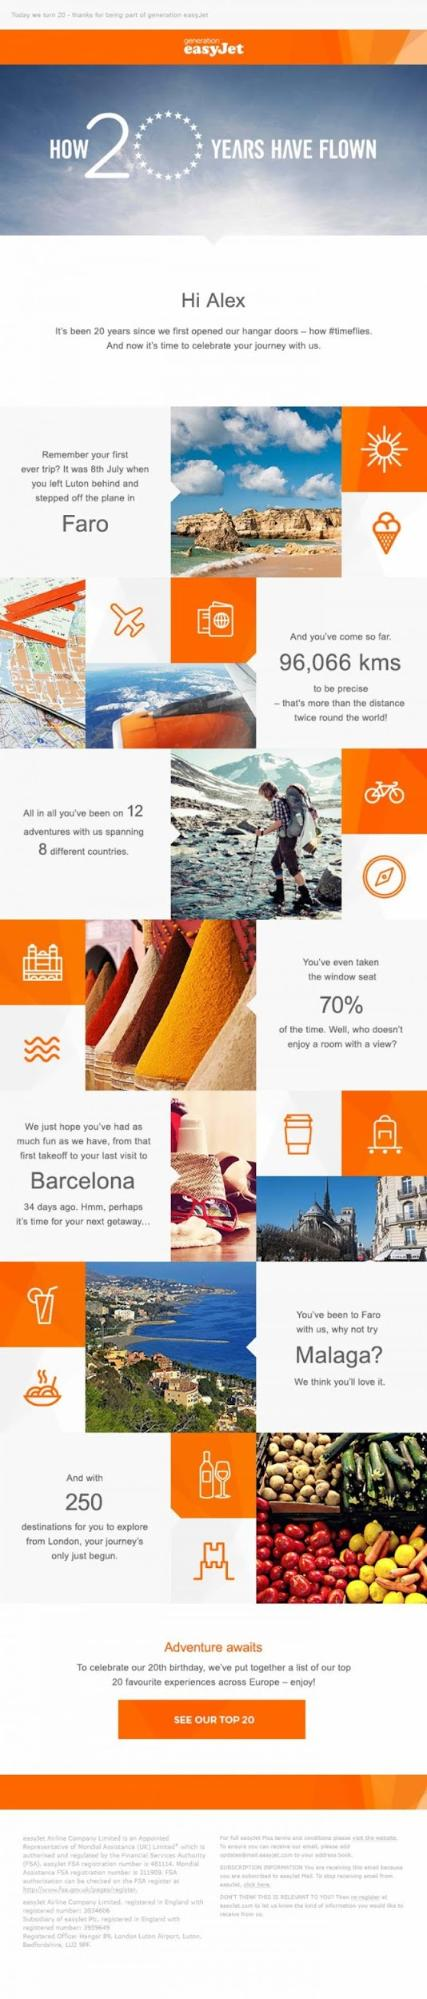 Example of a personalised email campaign sent by easyJet to their customers – enabling personalised messaging is one reason why email marketing is so important